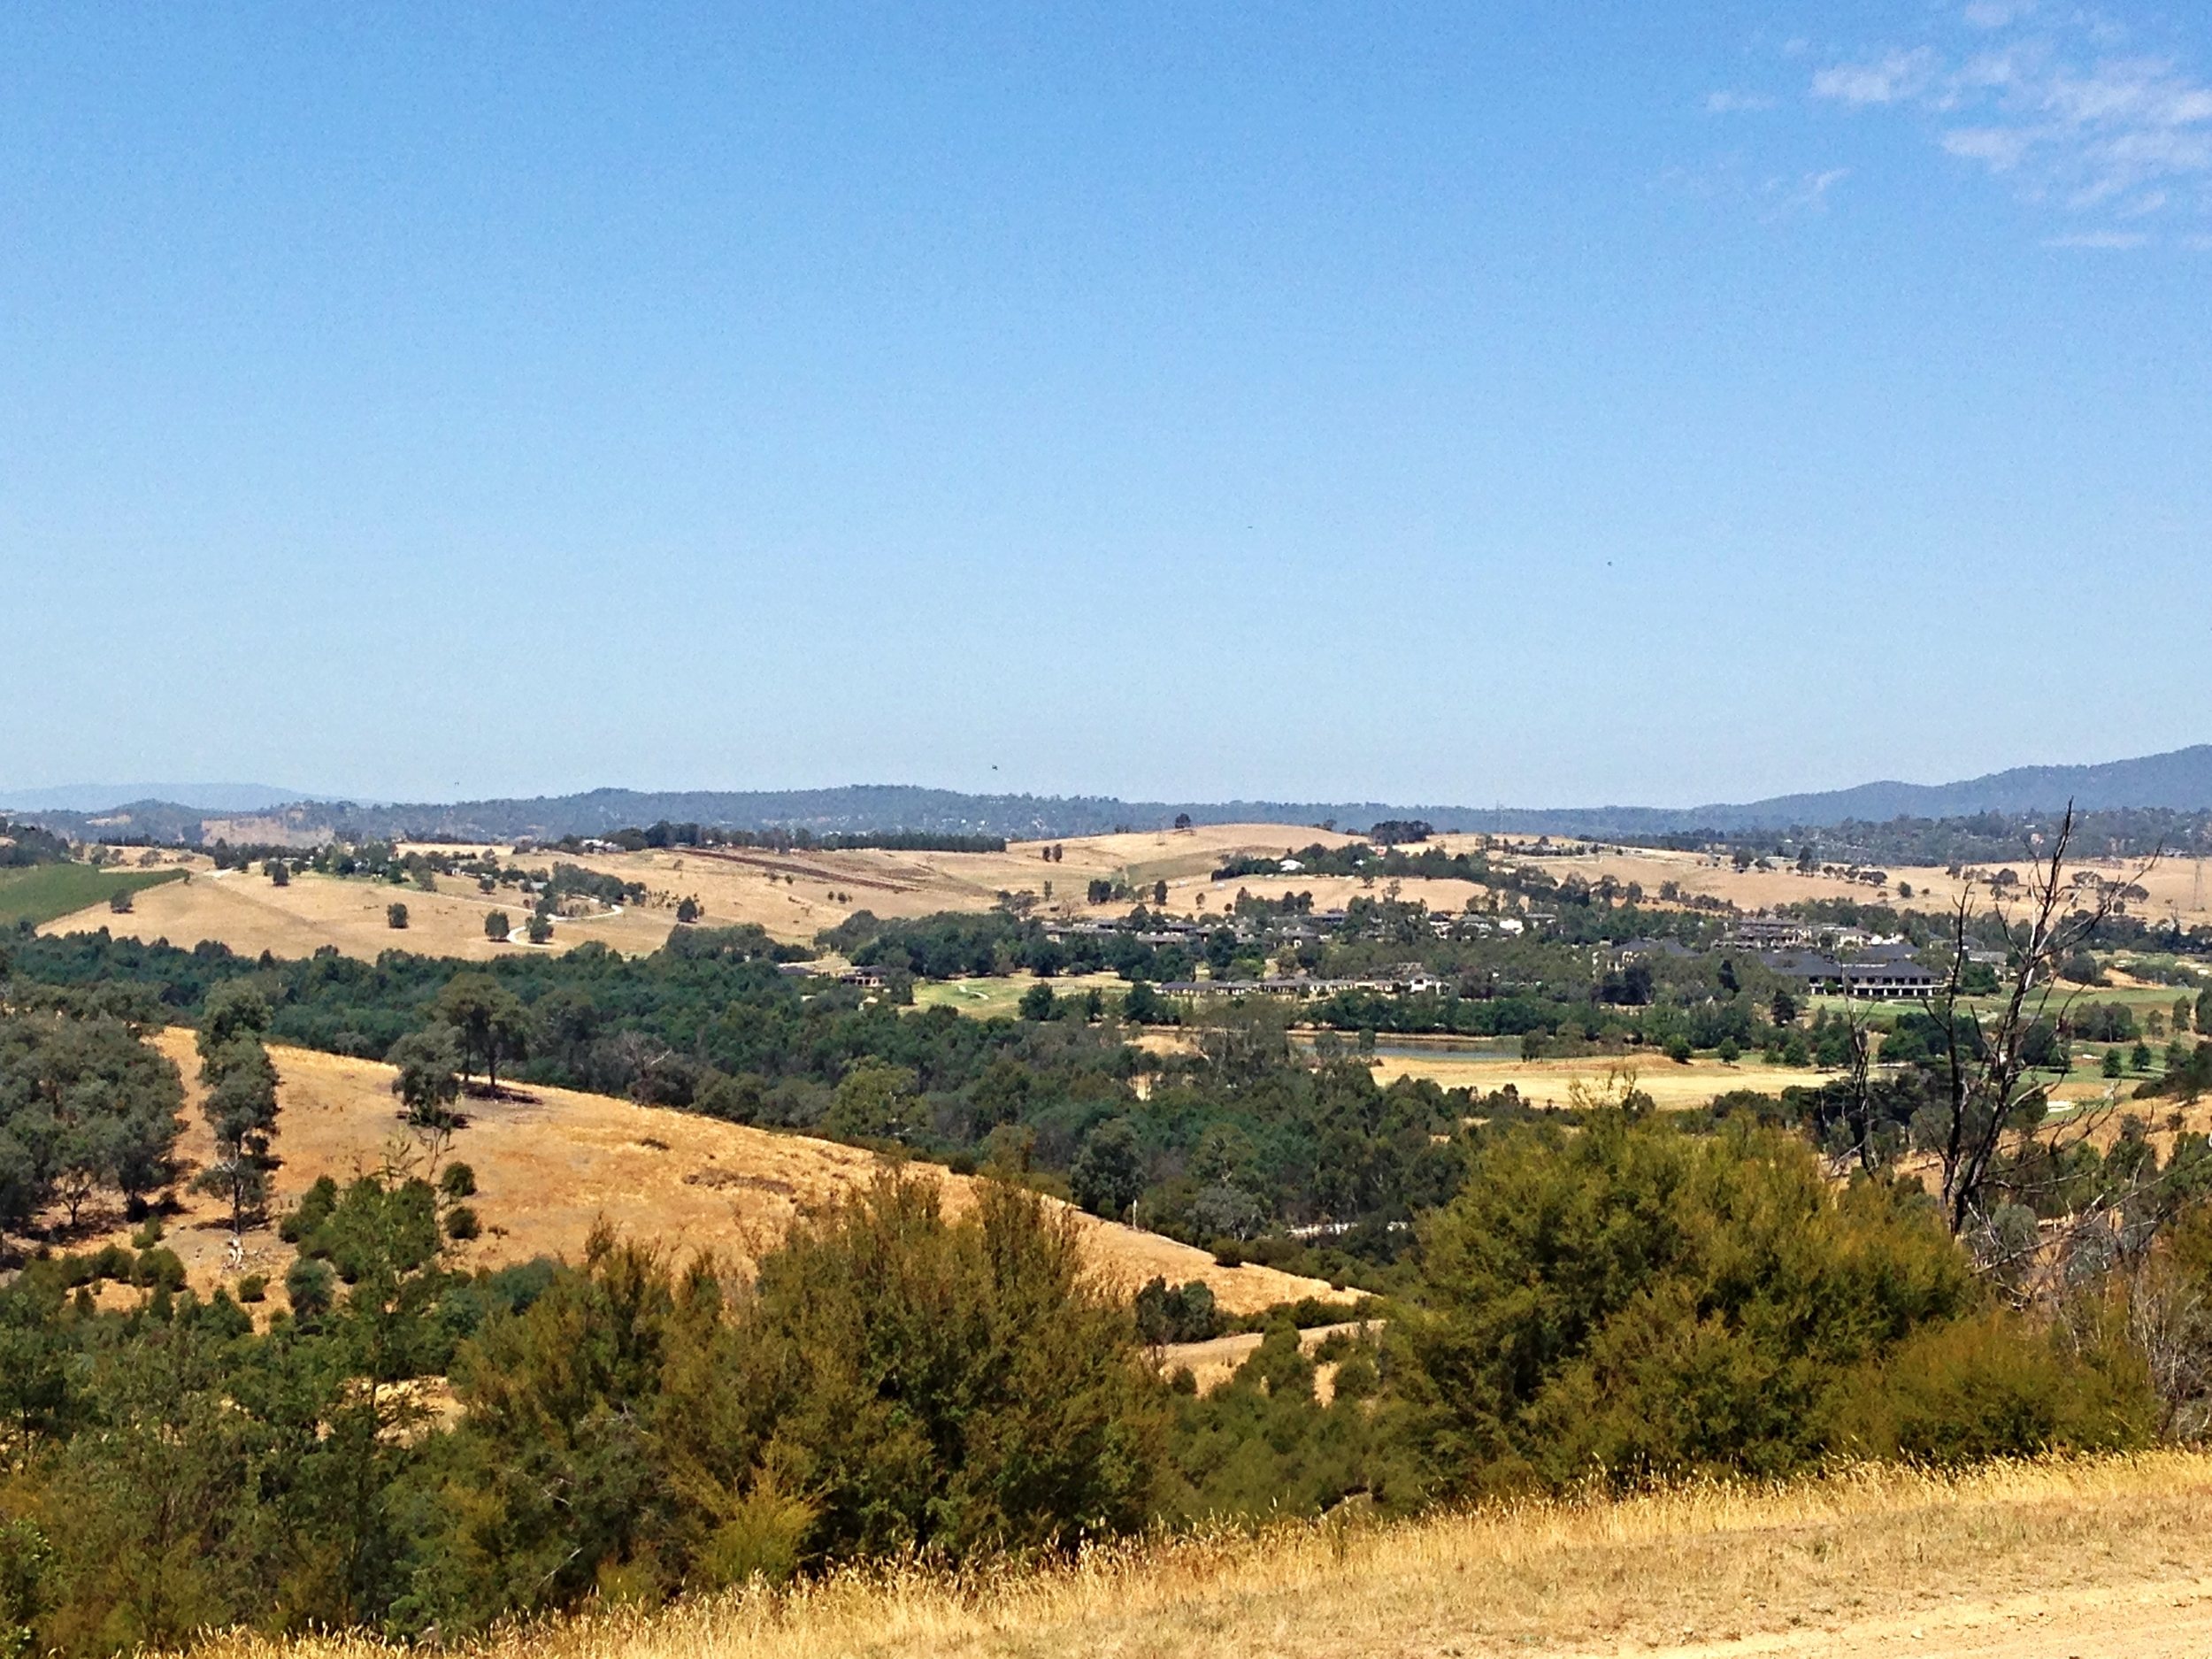 The view from the top: the surrounding Yarra Valley region.